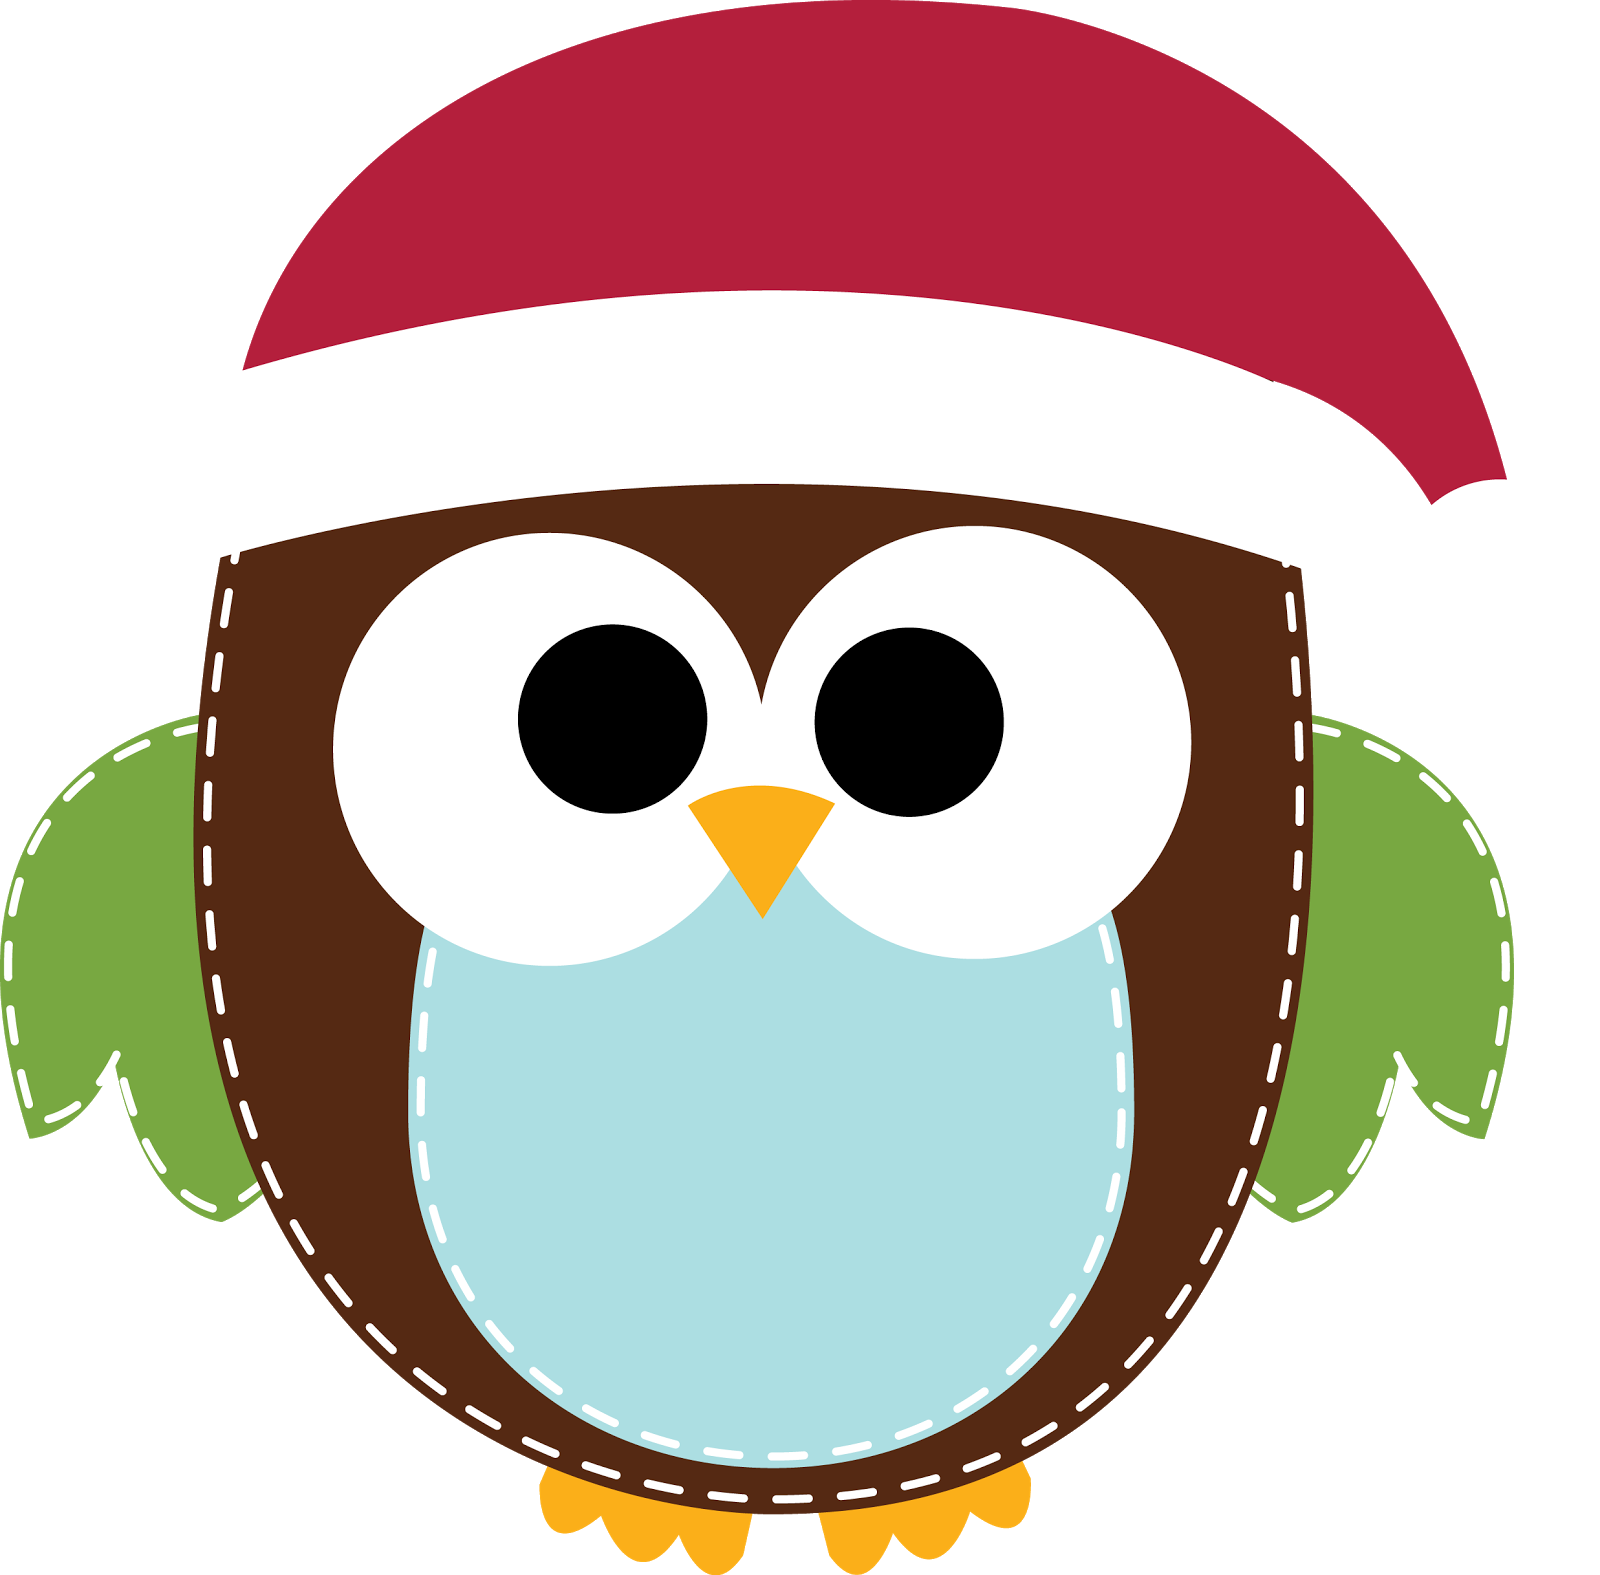 Happy Holidays 2012 Clip Art Hd Images 3 HD Wallpapers |